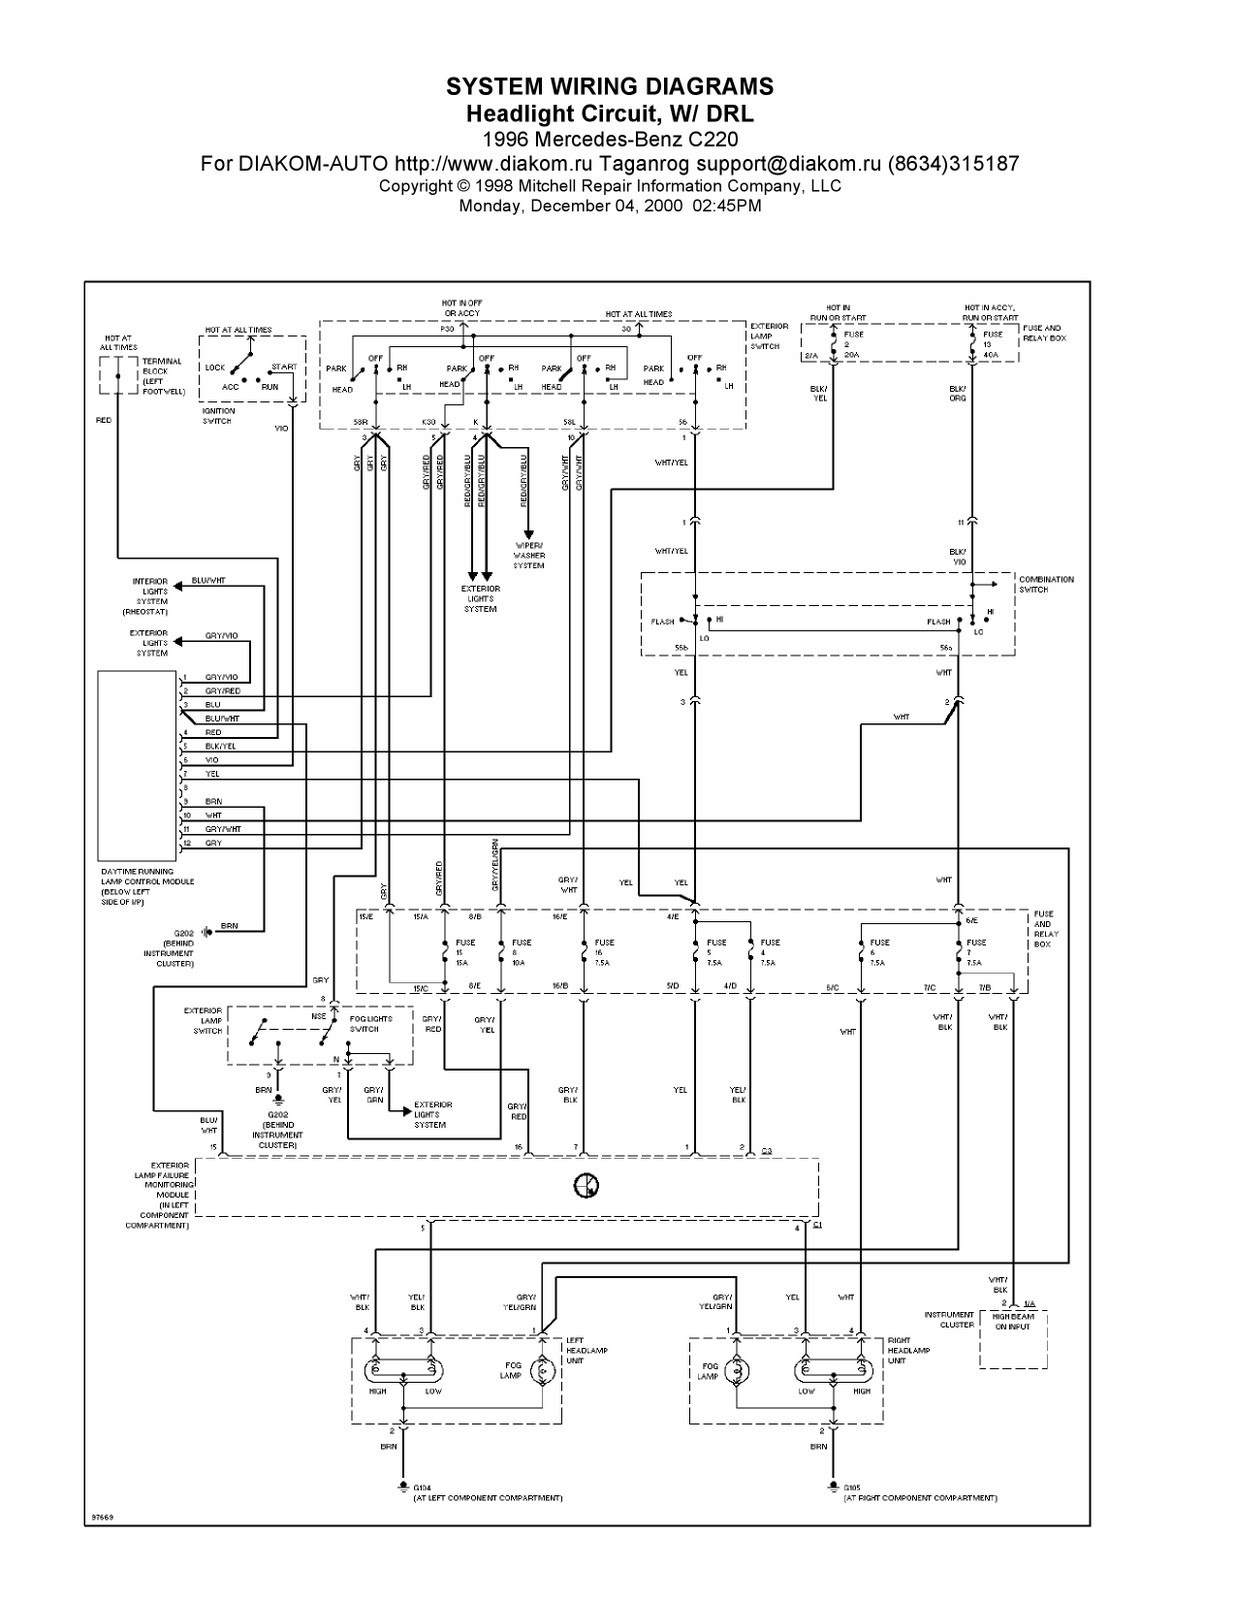 Mercedes Benz Radio Wiring Diagram Pond Ecosystem Small Engine Oil Leak Free Image For User